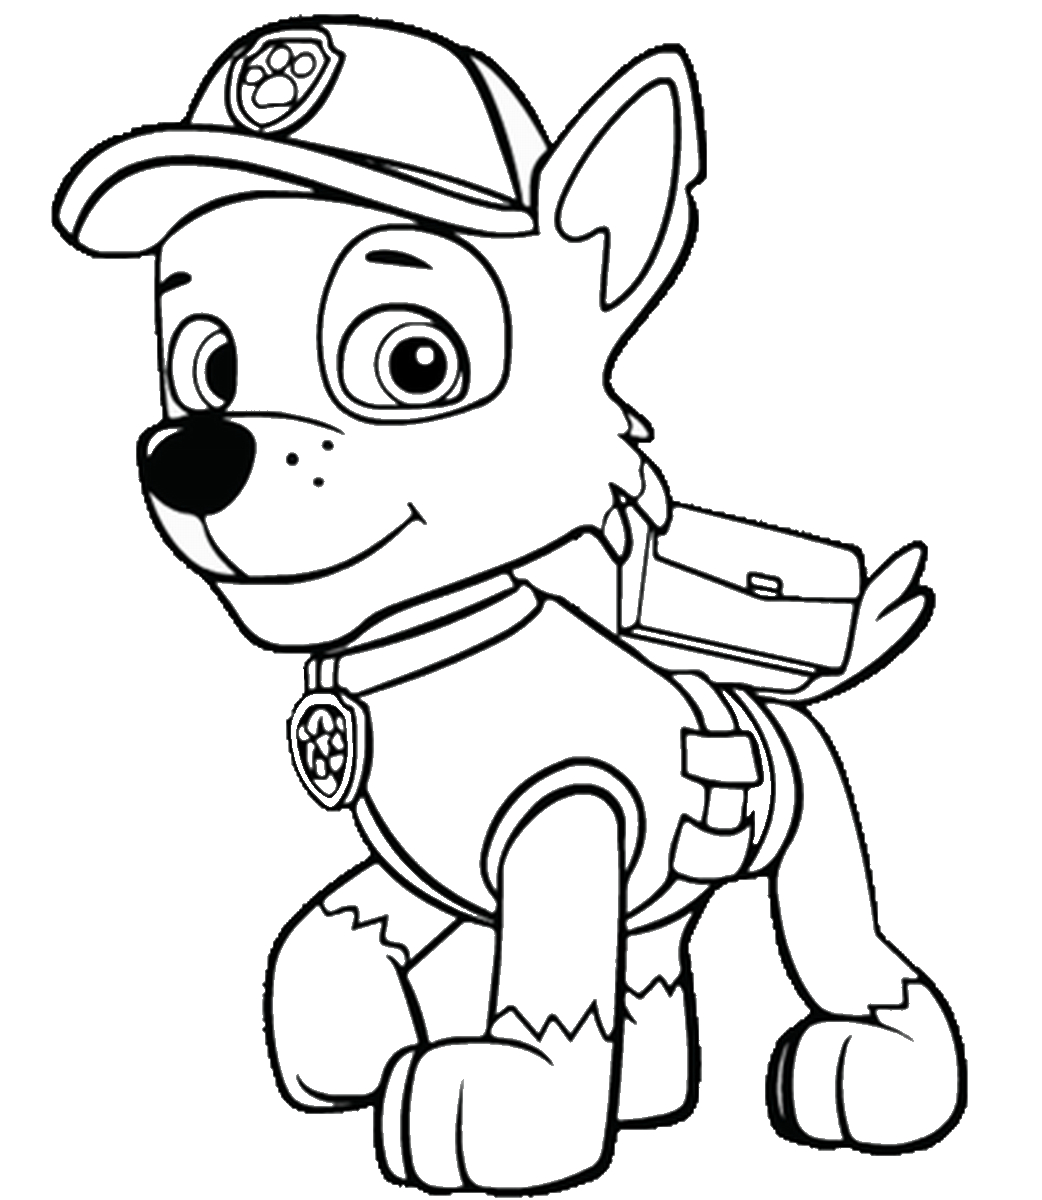 Marshall Paw Patrol Coloring Page Paw Patrol Coloring Pages Sheets Solid  Graphikworks Co Page Skye - birijus.com